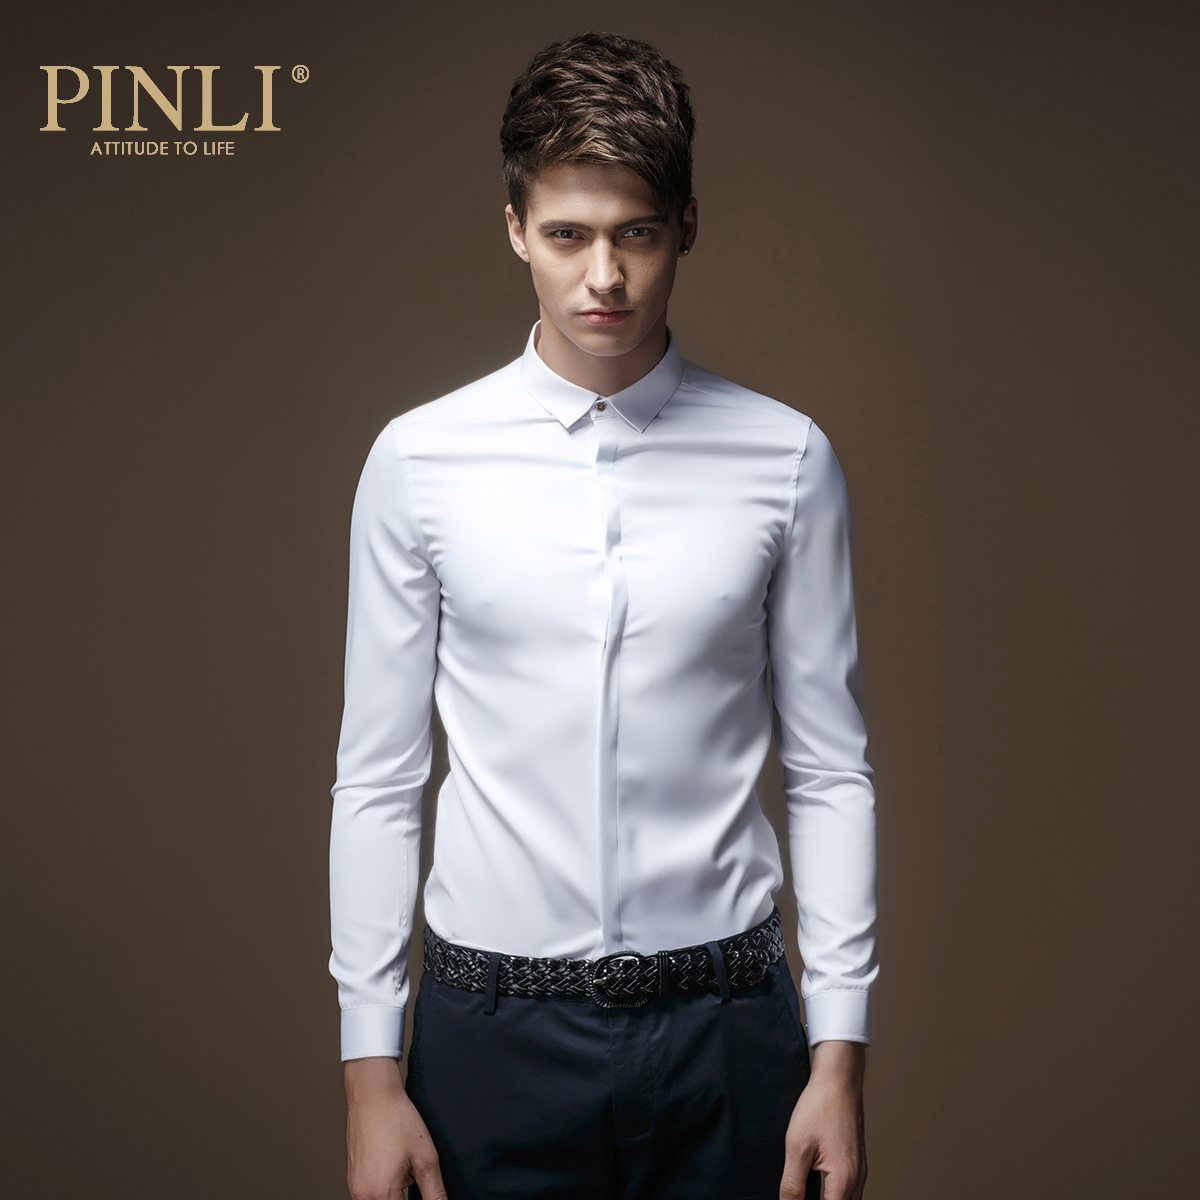 2019 Regular New Blusas Pinli Products In The Spring Of British Men's Solid Color Micro Collar Long Sleeved Shirt Men Slim C029